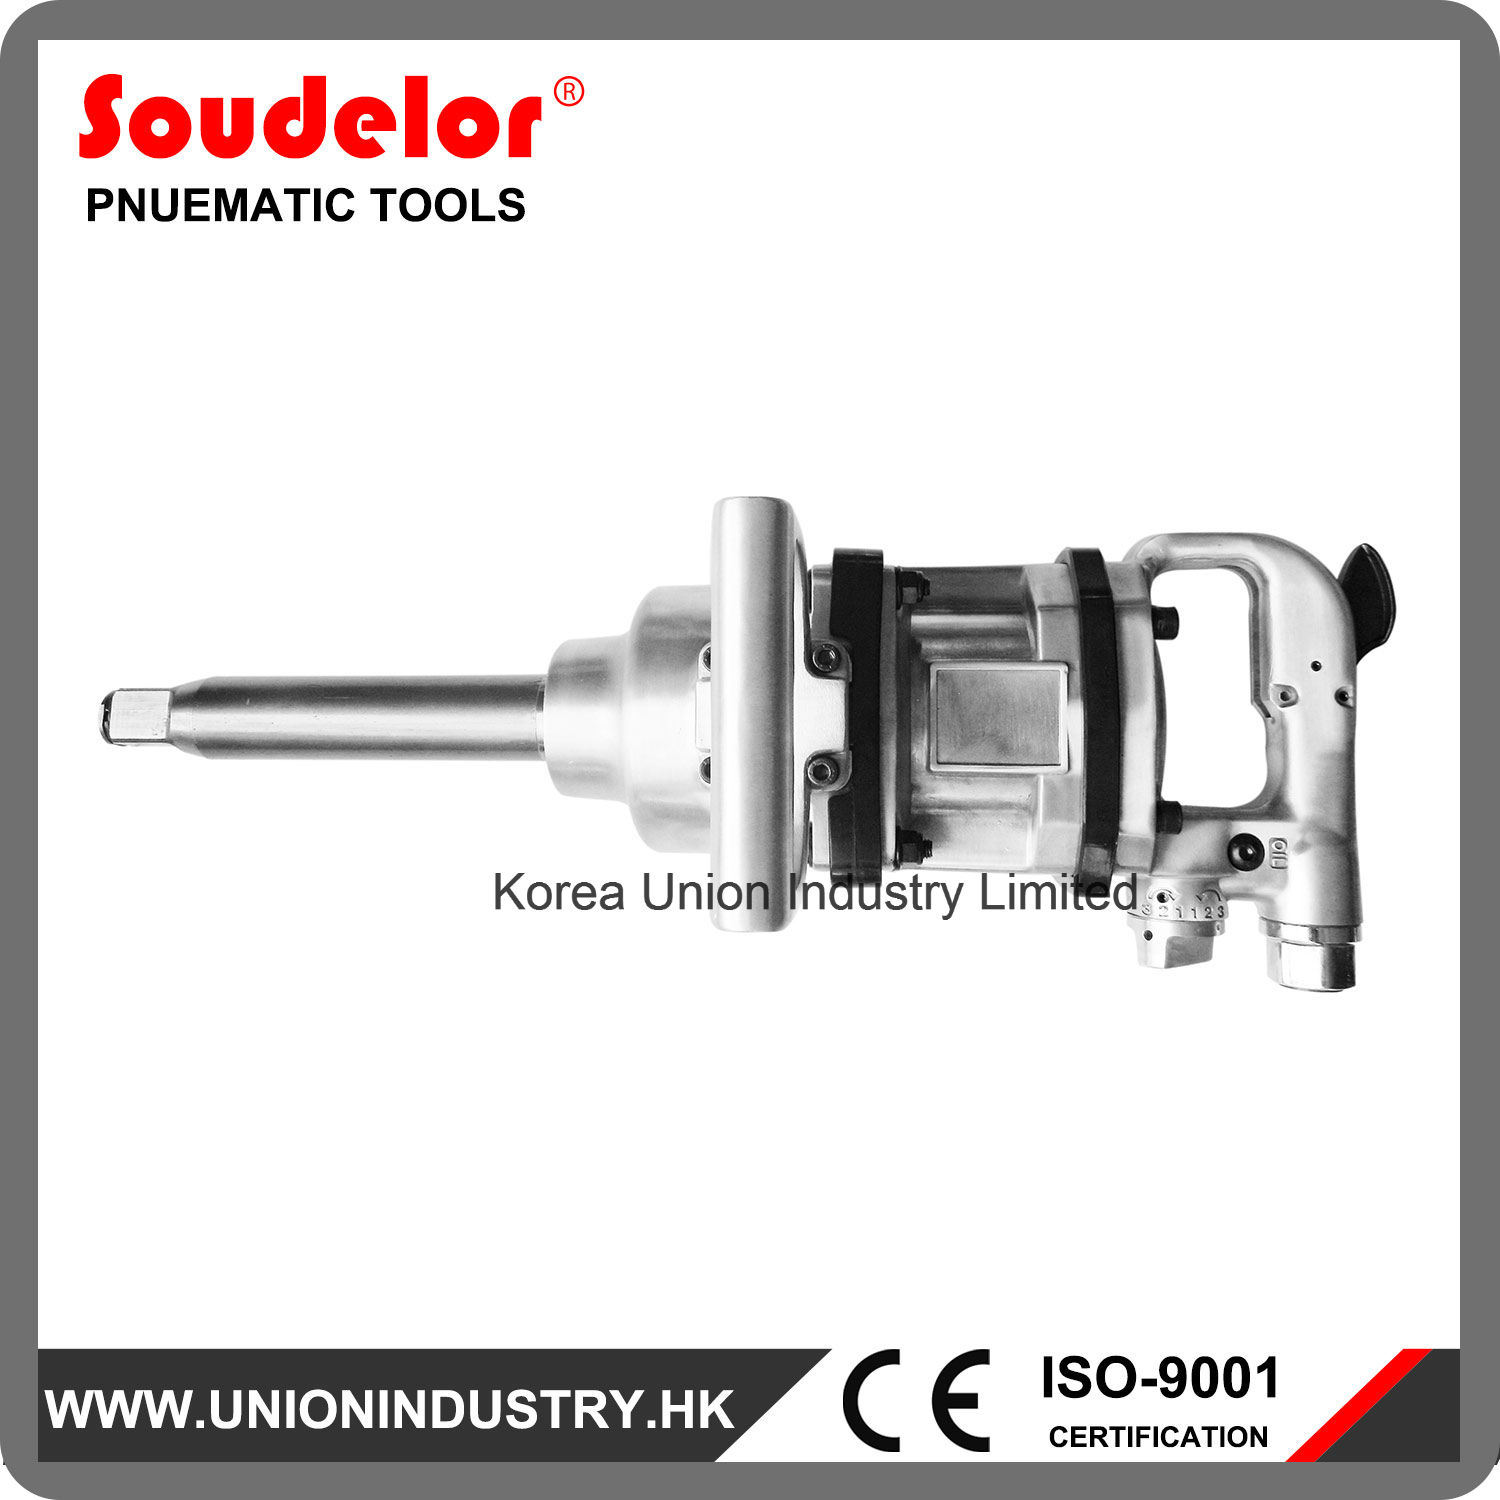 1 Inch High Torque Air Tool/Impact Wrench UI-1204